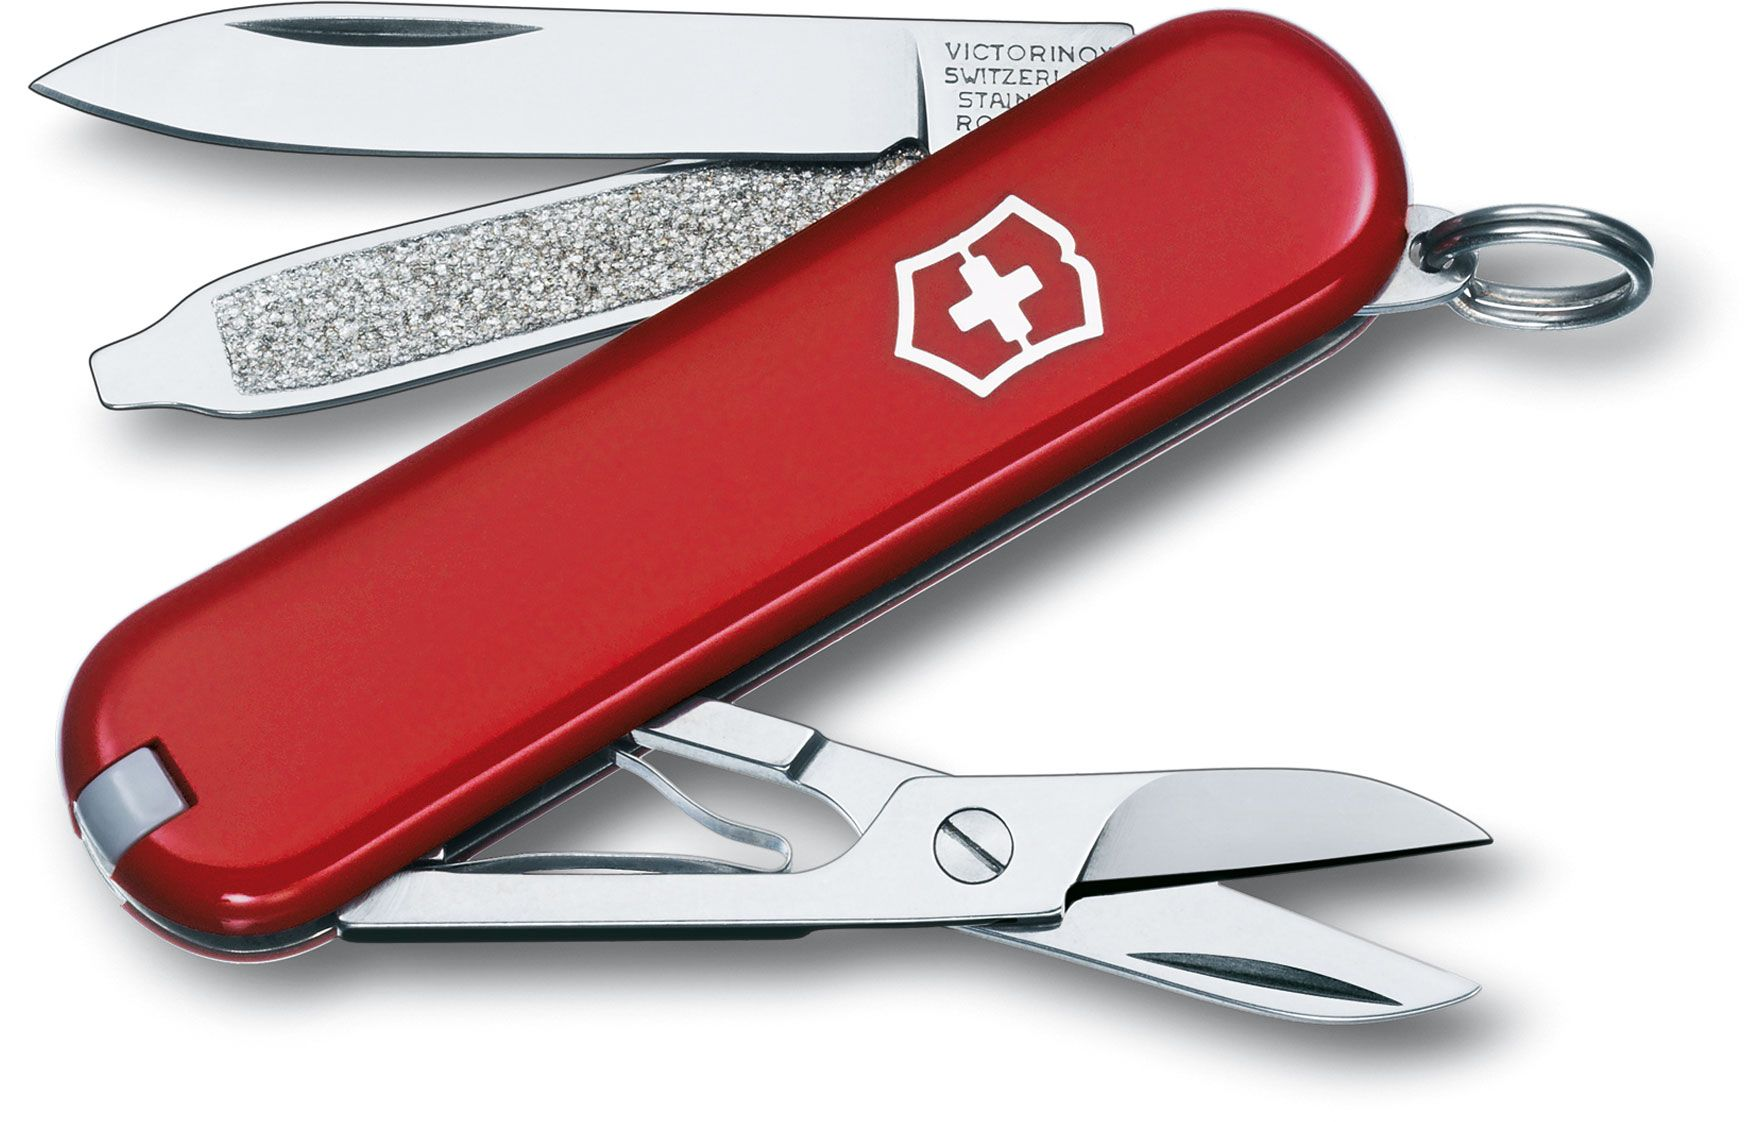 Victorinox Swiss Army Classic SD Multi-Tool, Red, 2.25 inch Closed